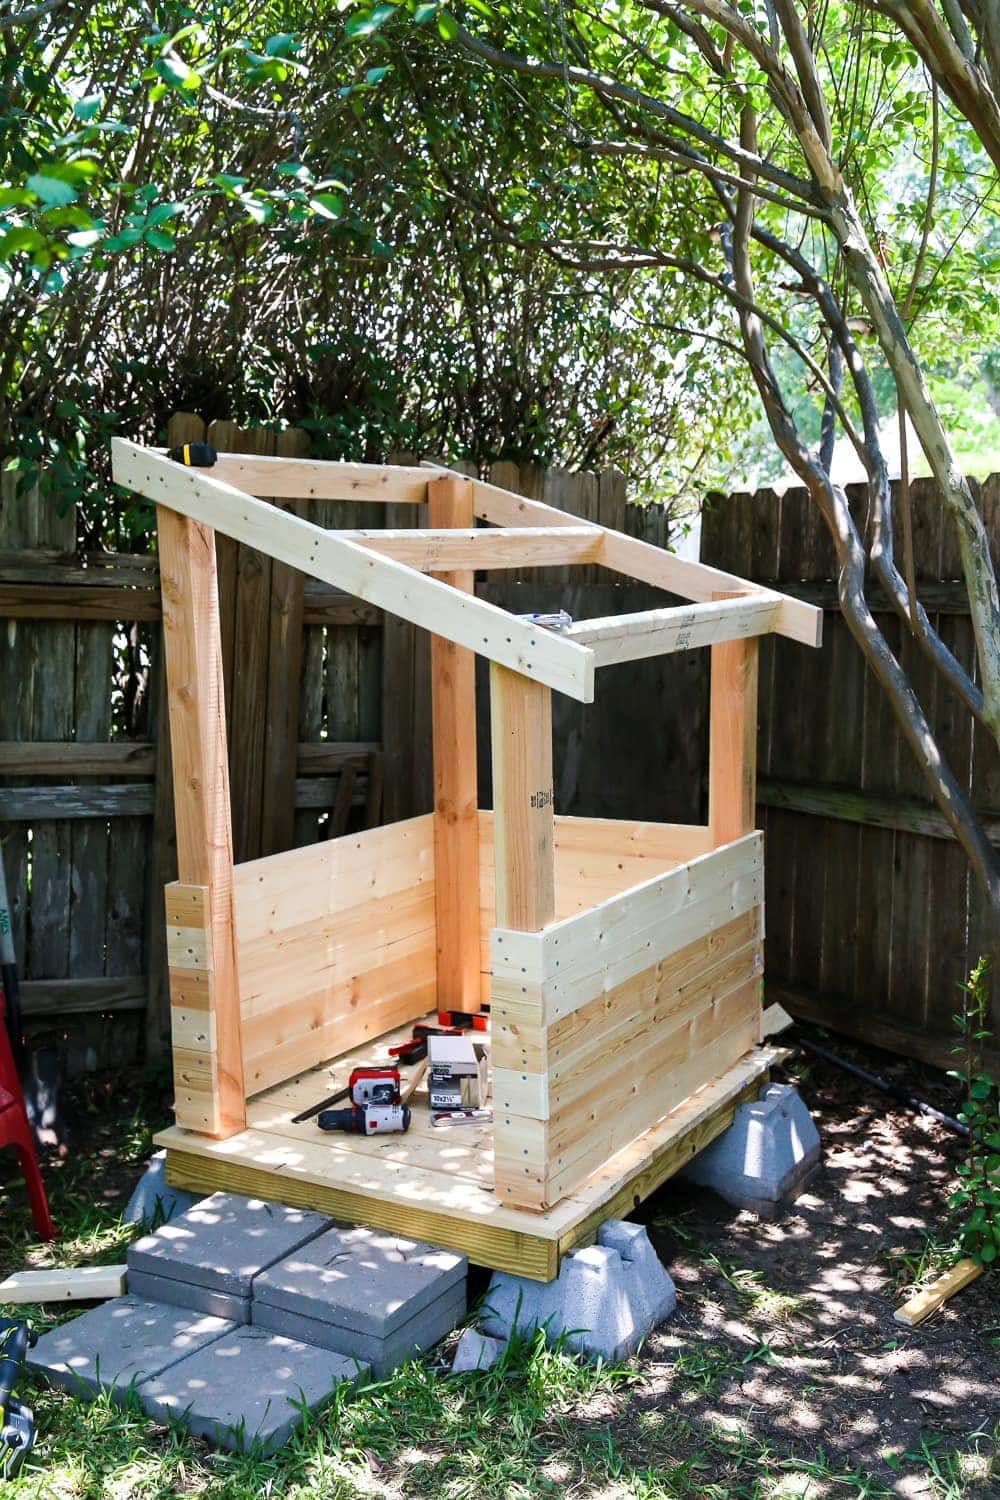 Building a DIY backyard playhouse